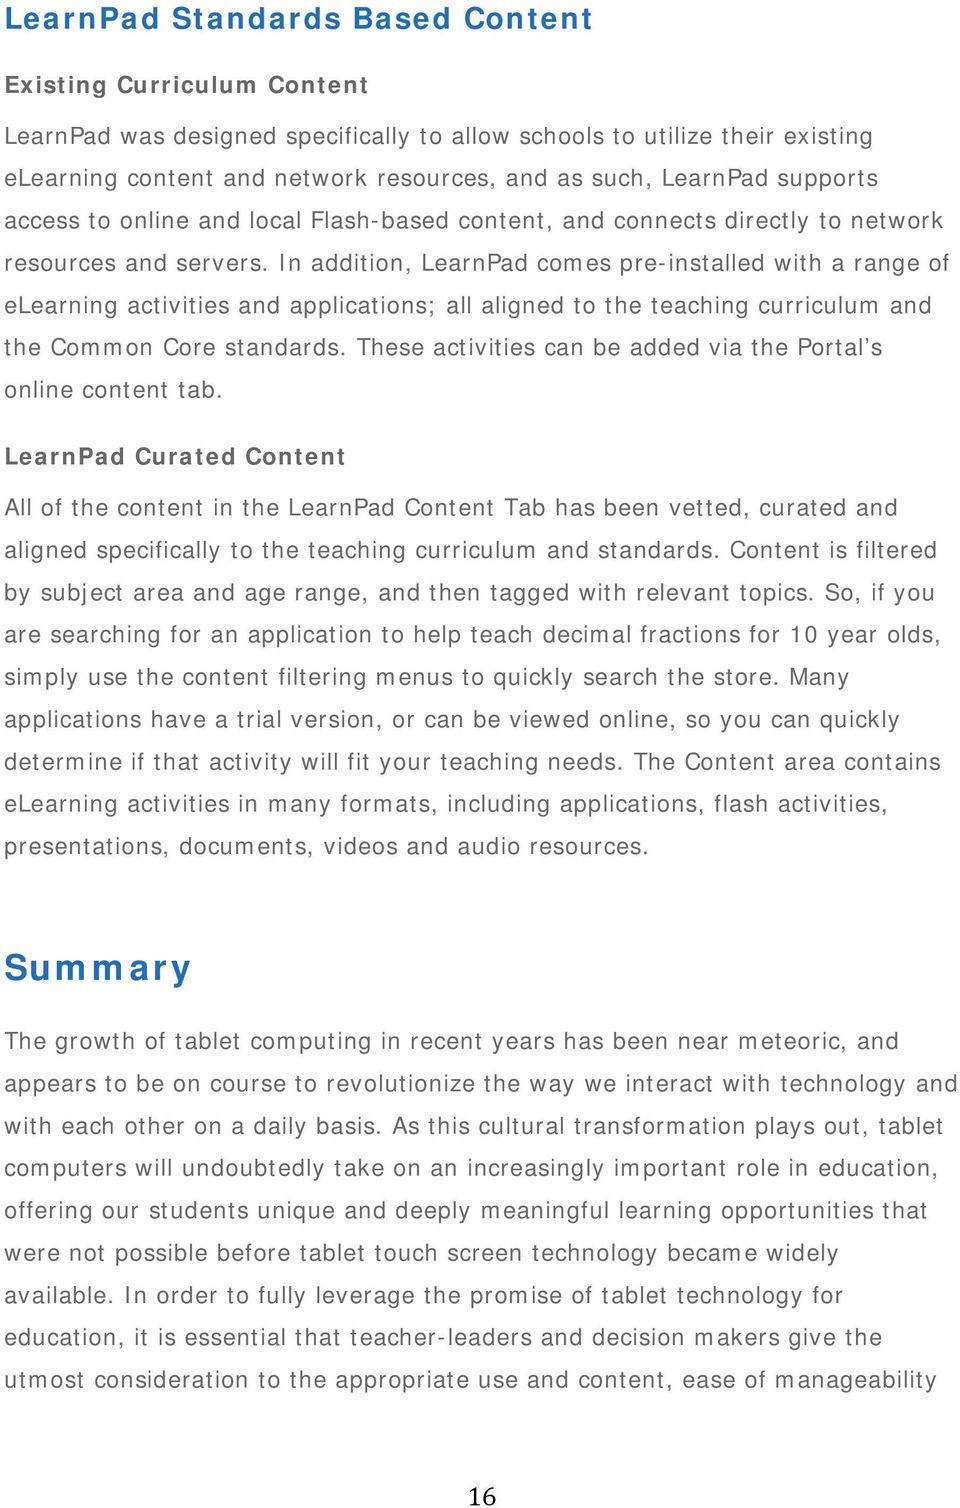 In addition, LearnPad comes pre-installed with a range of elearning activities and applications; all aligned to the teaching curriculum and the Common Core standards.